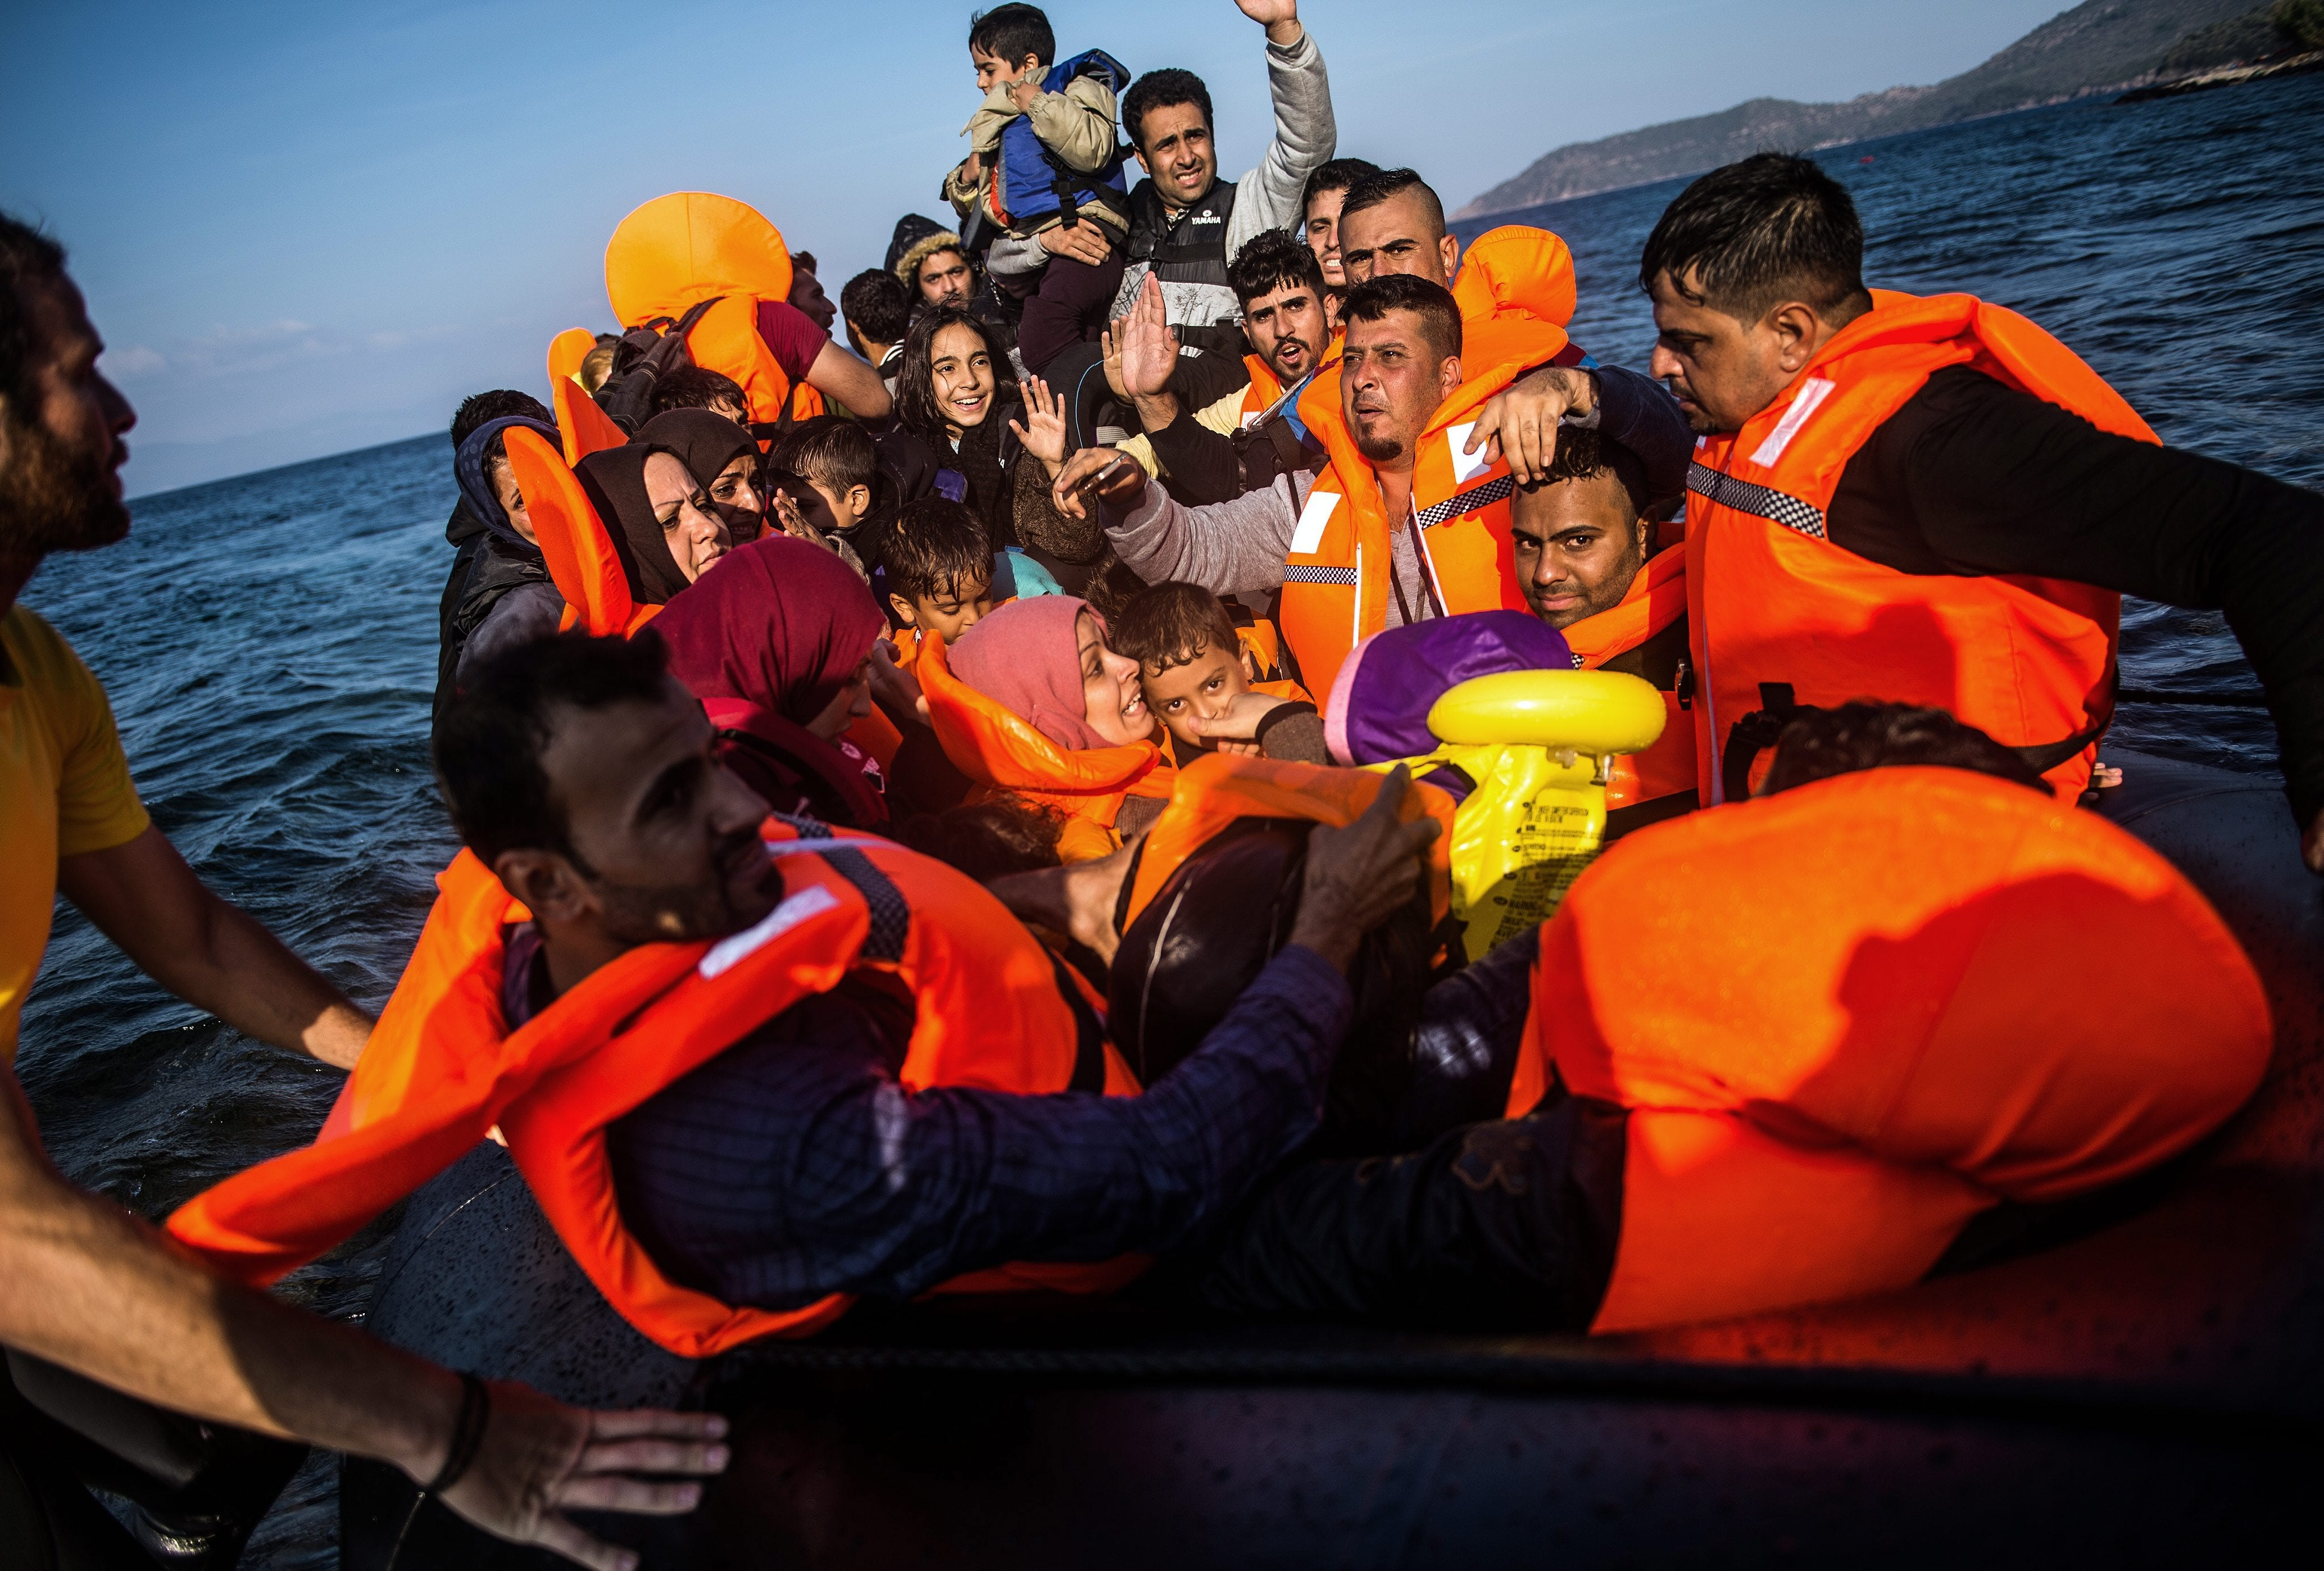 Drowned refugee photo essay